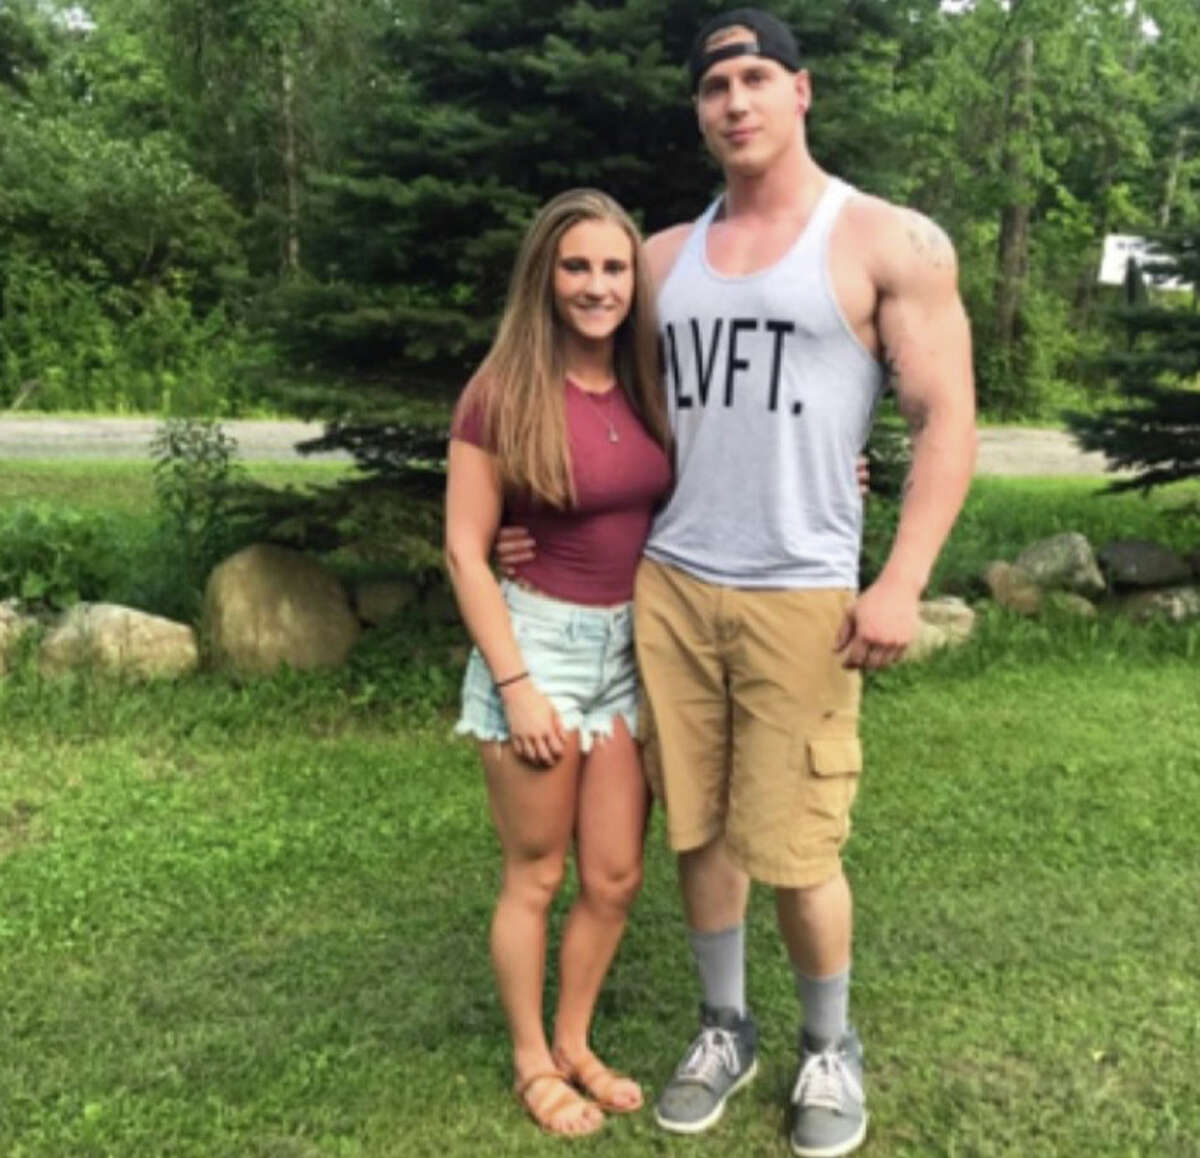 Savannah Bursese and her boyfriend, Matthew Coons, were both killed in a birthday party limousine crash that killed 20 in Schoharie on Oct. 6, 2018. Coons' mother says firefighters and other rescuers at the scene helped them deal with crushing emotion of knowing no one survived the crash.